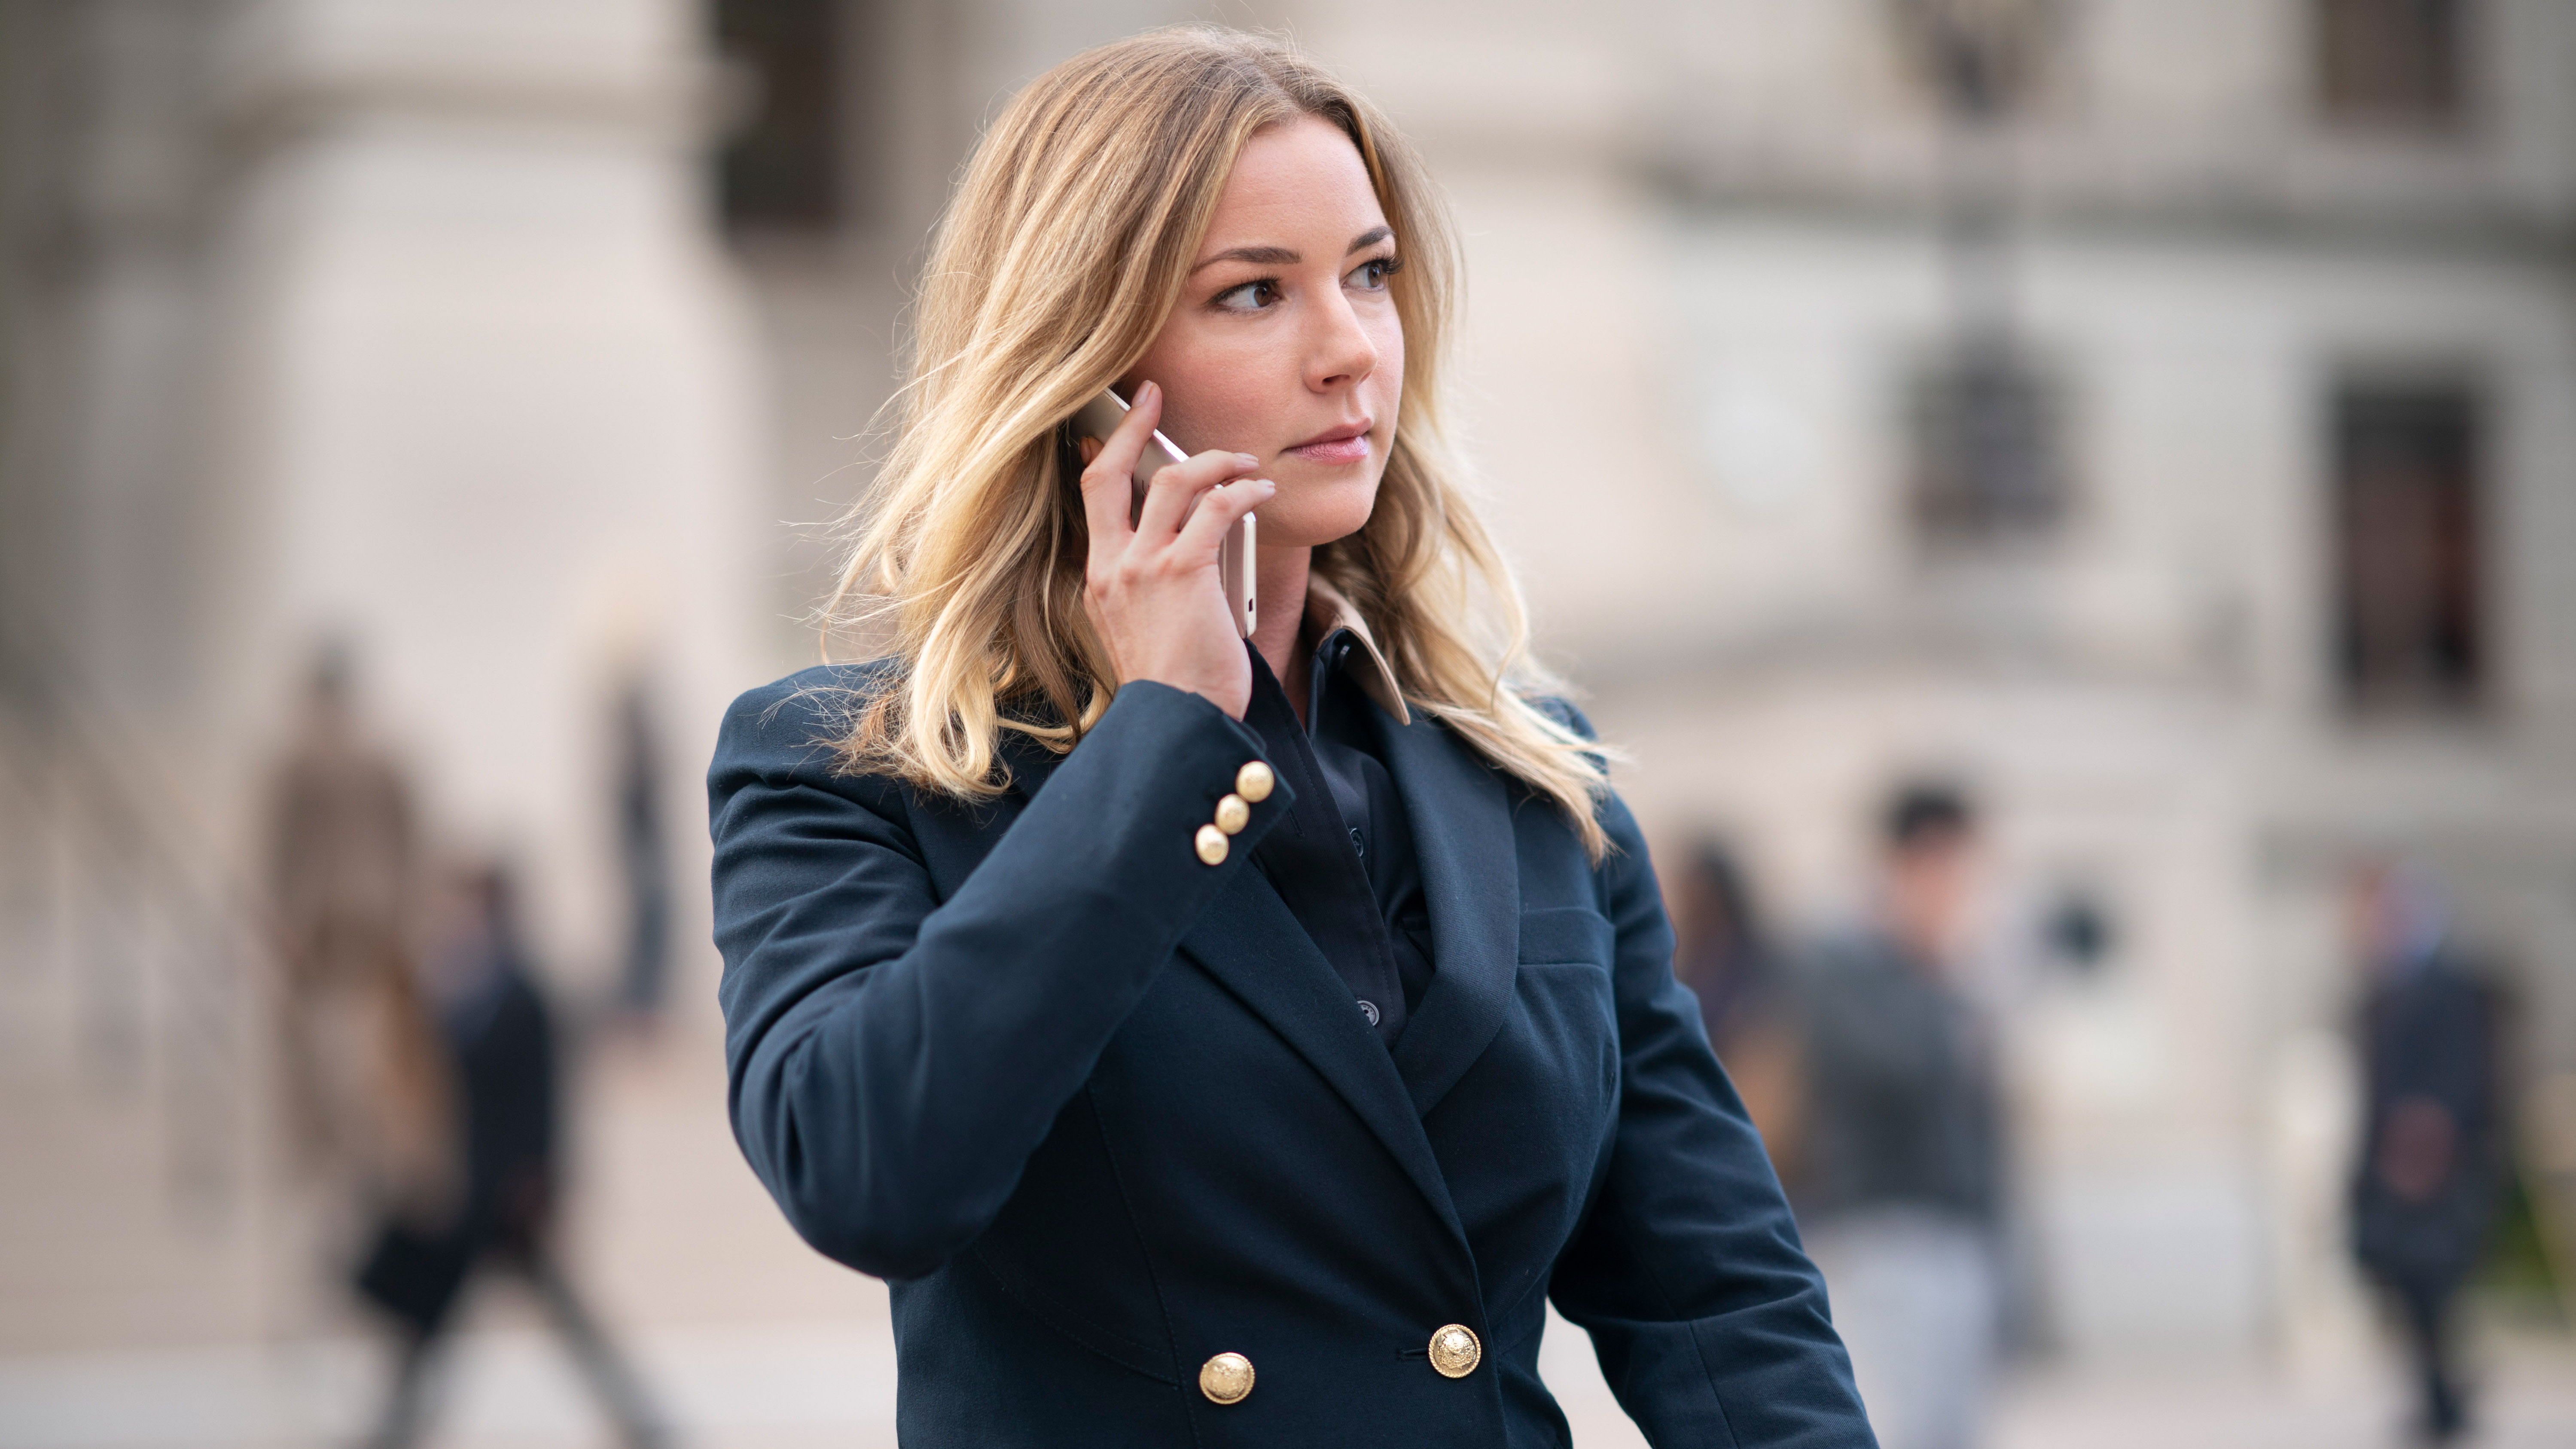 Sharon Carter makes an important call to her clients